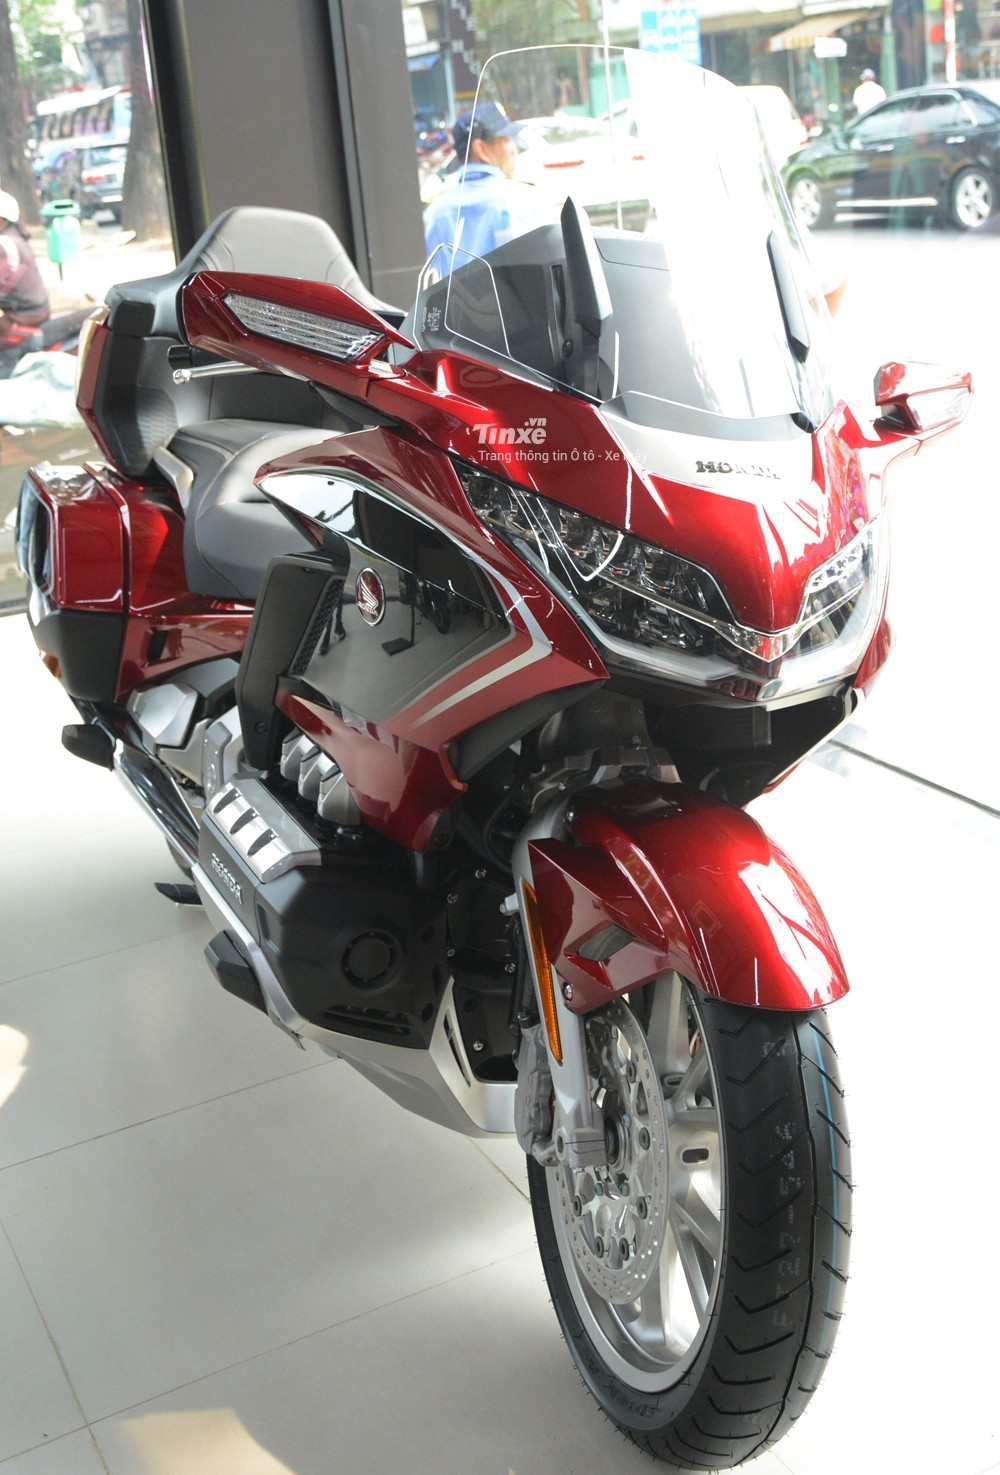 Honda Gold Wing is currently one of the most expensive motorcycles in Vietnam today